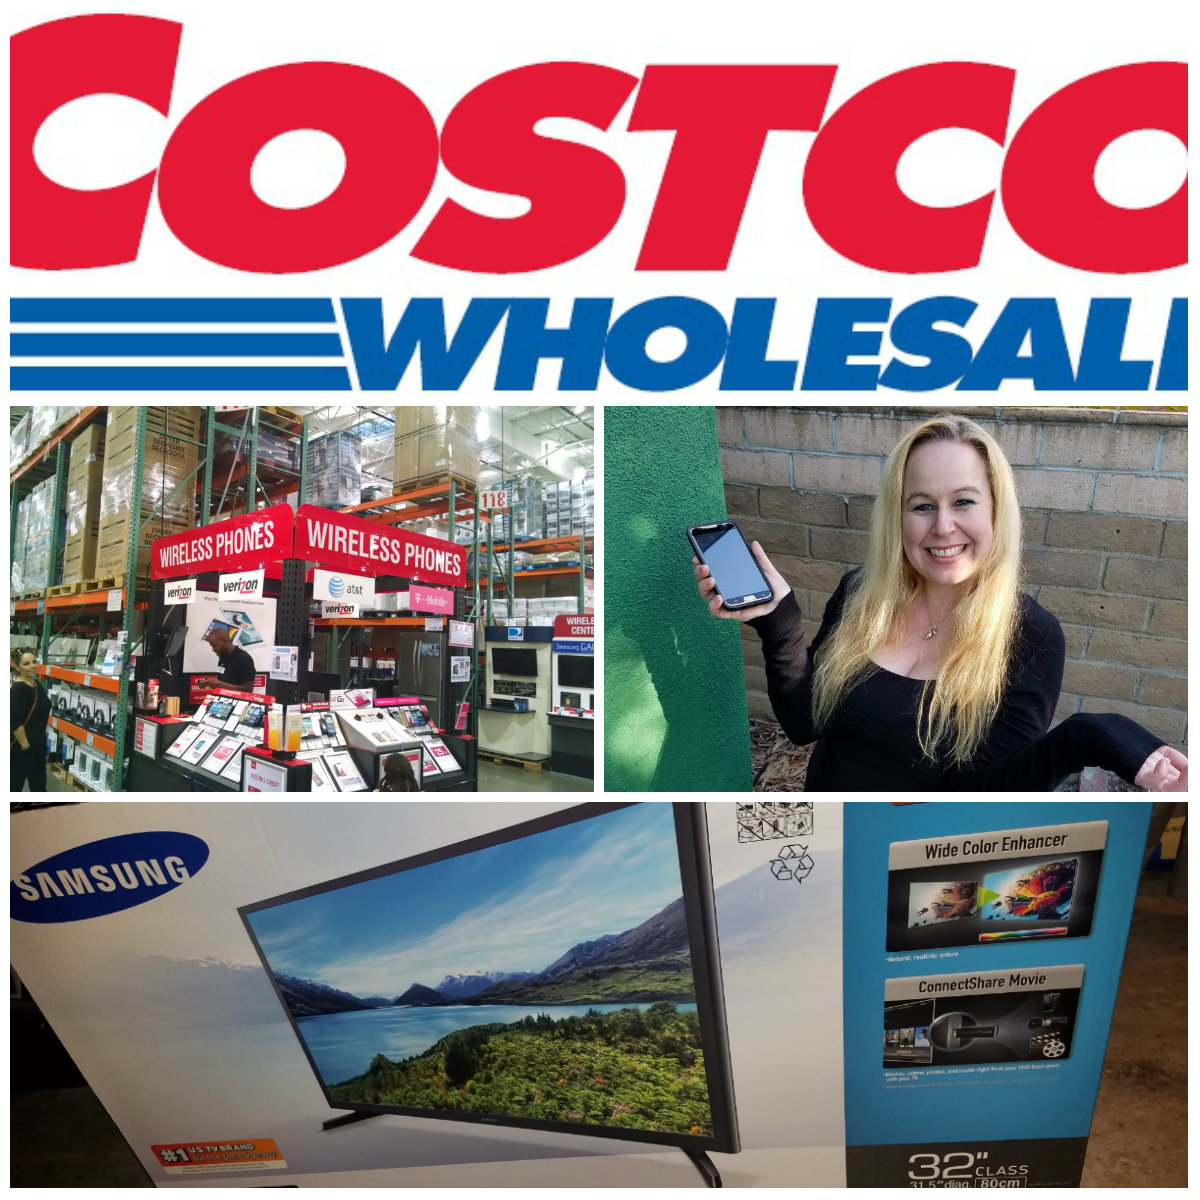 Get The Best Smart Phone Plans And Phone Deals At Costco Dani S Decadent Deals